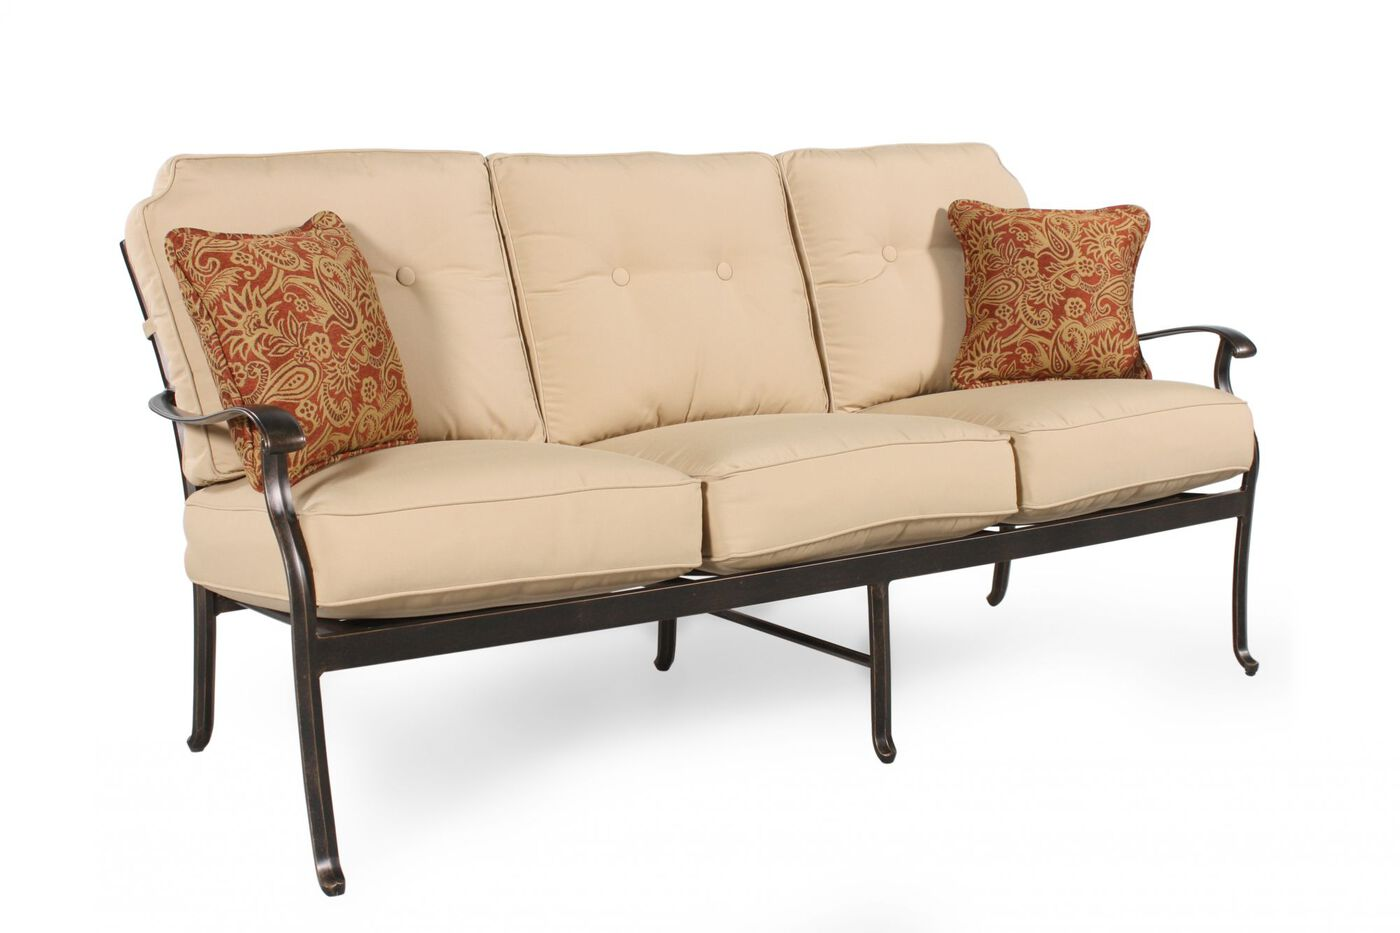 Agio Heritage Select Patio Sofa